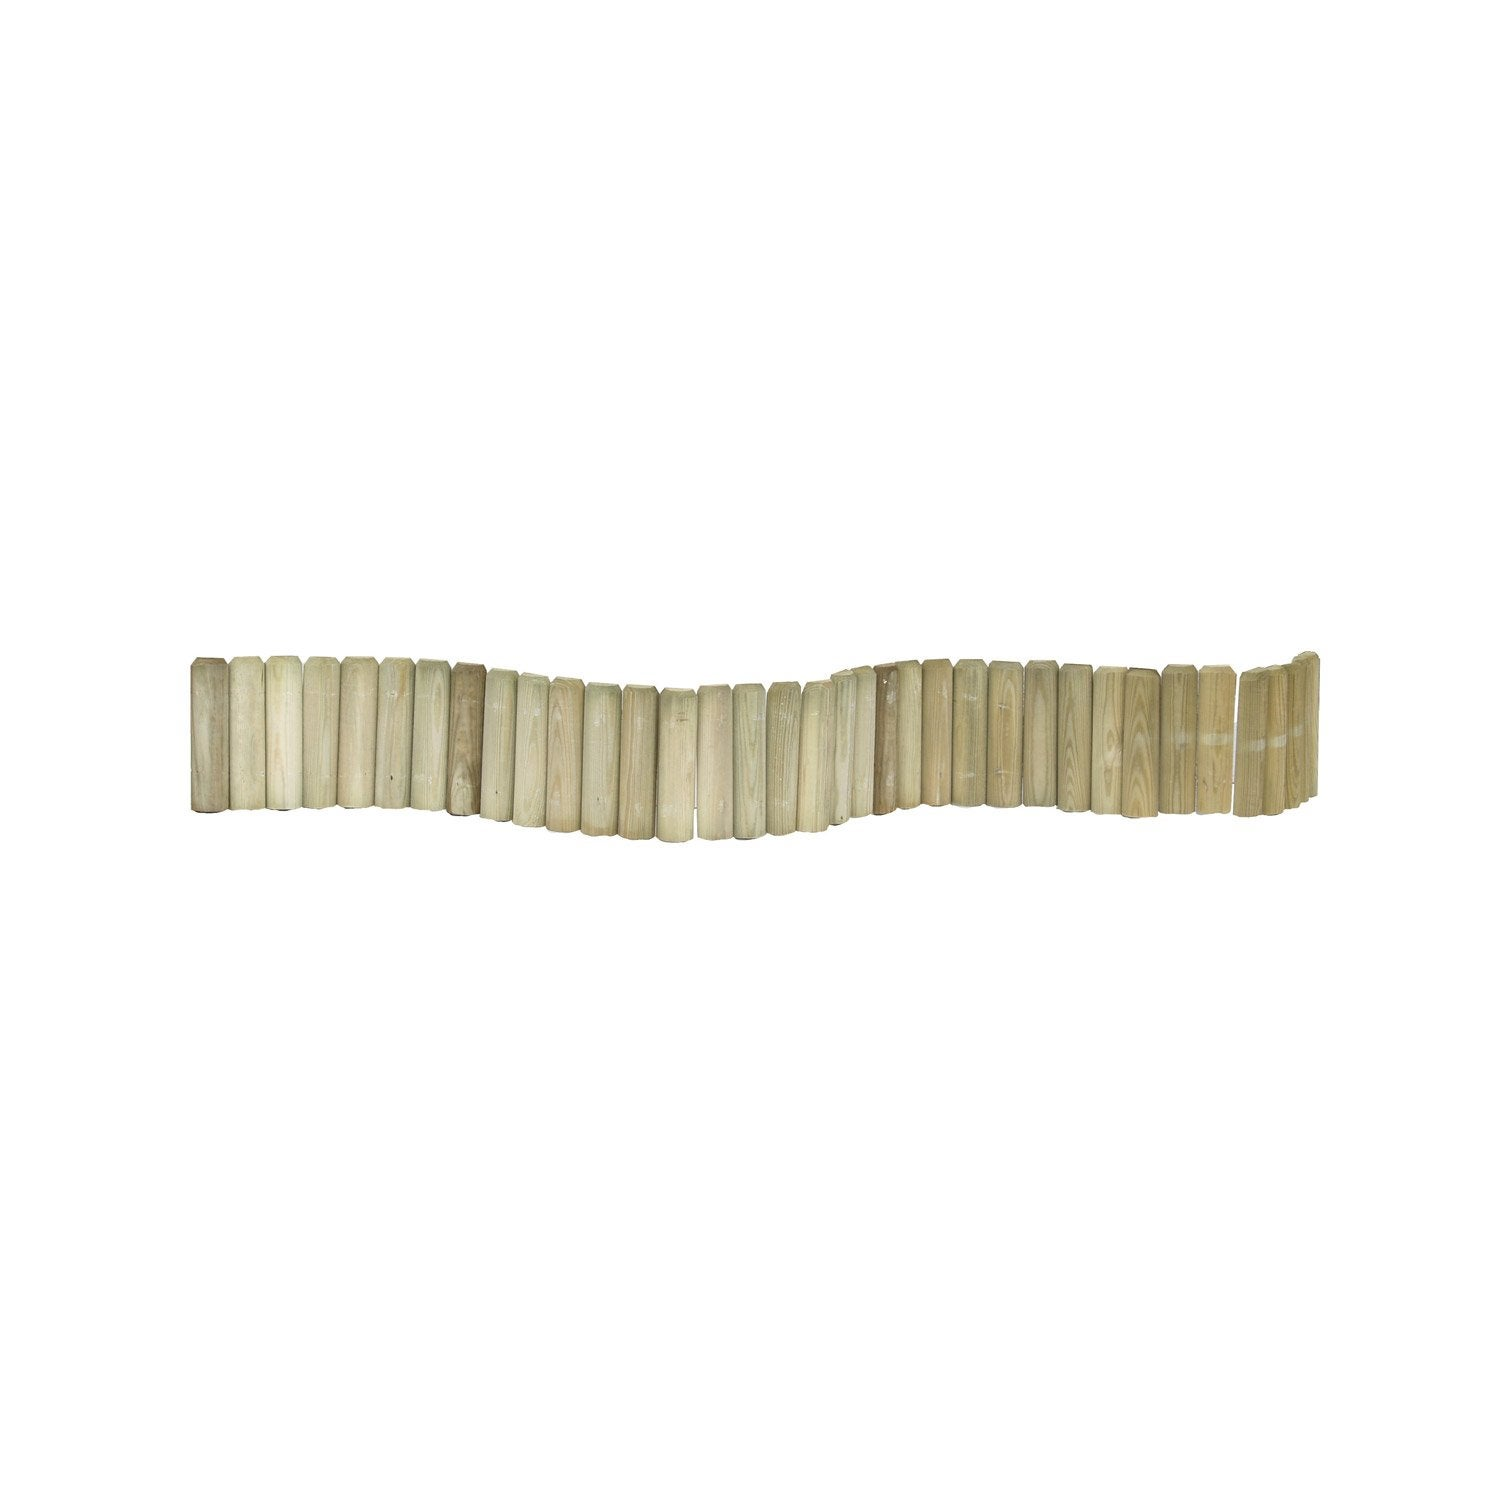 Bordure planter 1 2 rondin bois naturel x cm for Bordure en bois de jardin